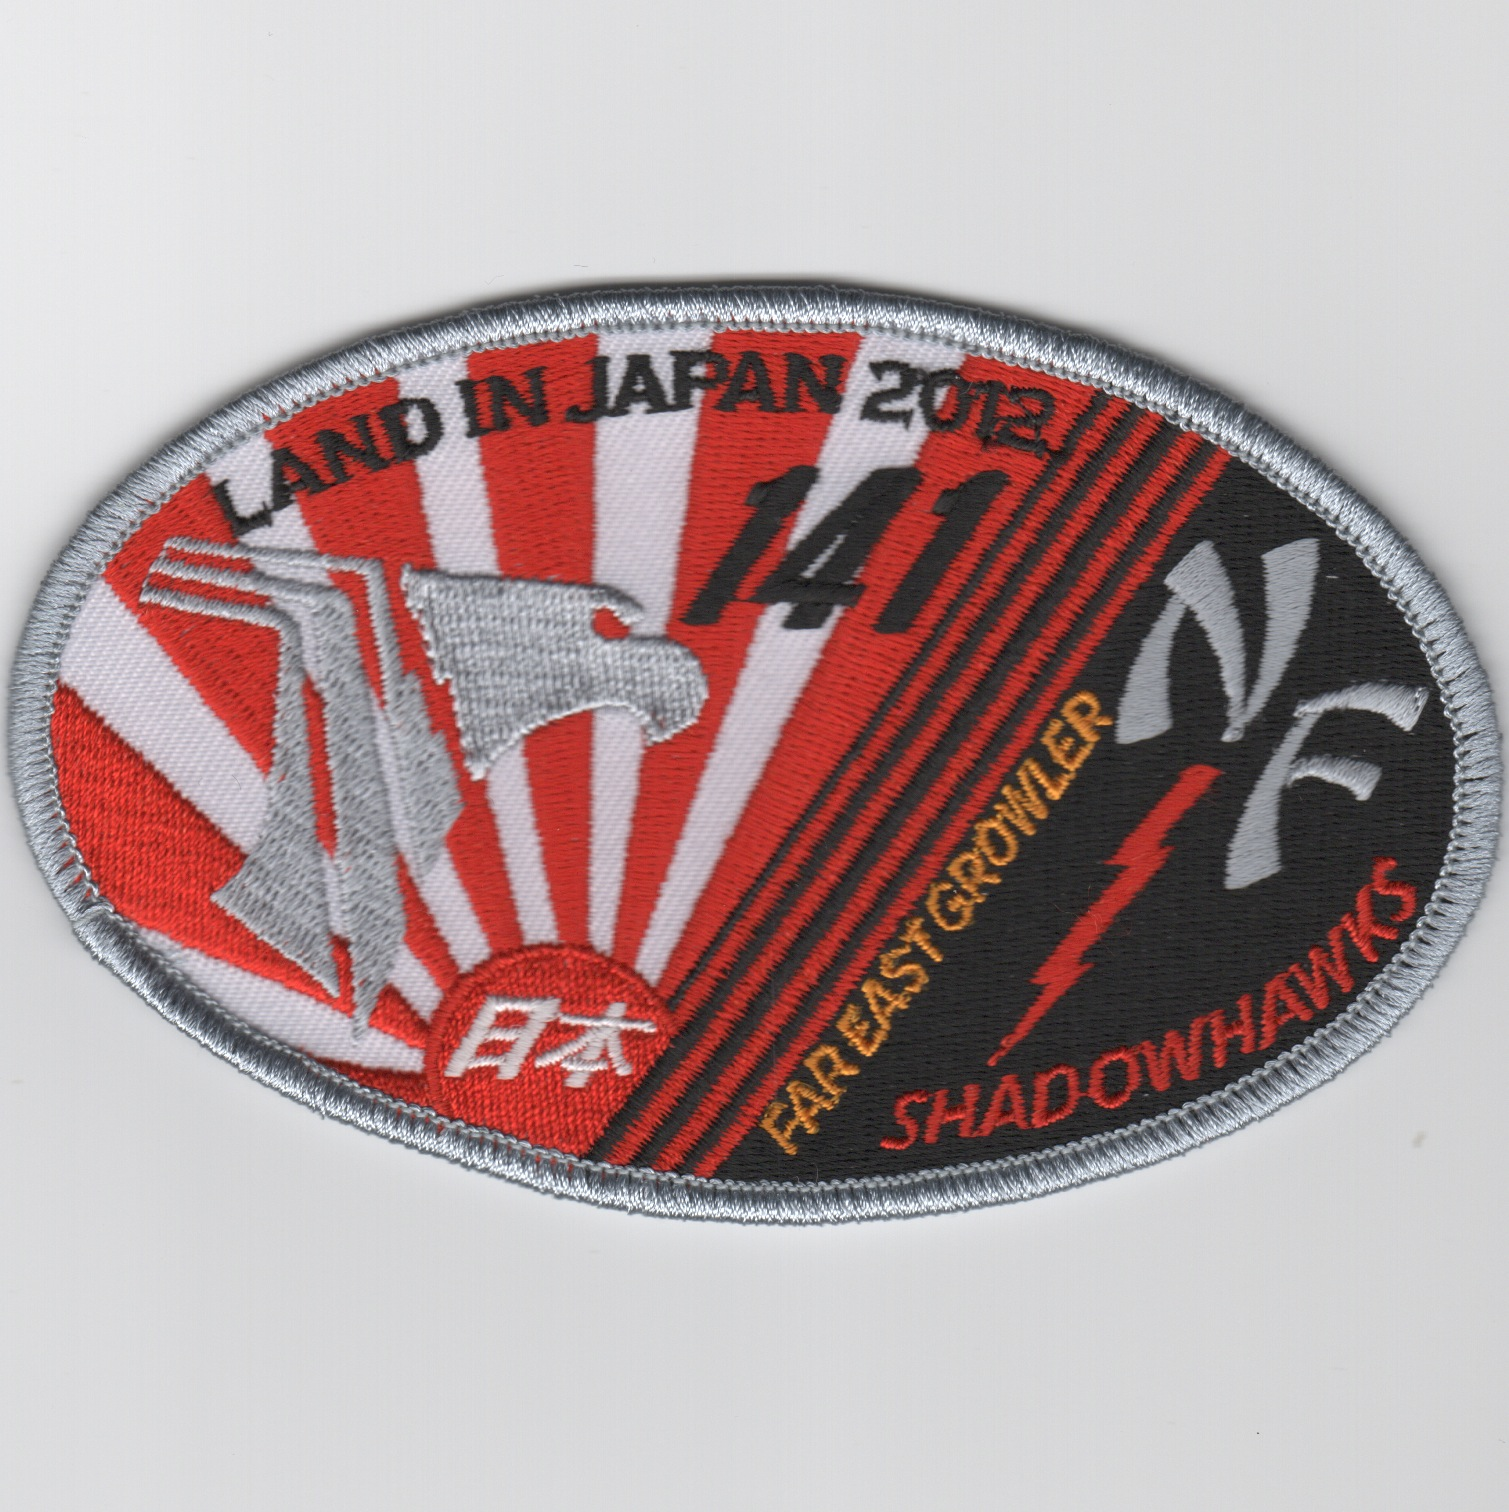 VAQ-141 2012 'Land in Japan' Patch (Oval)